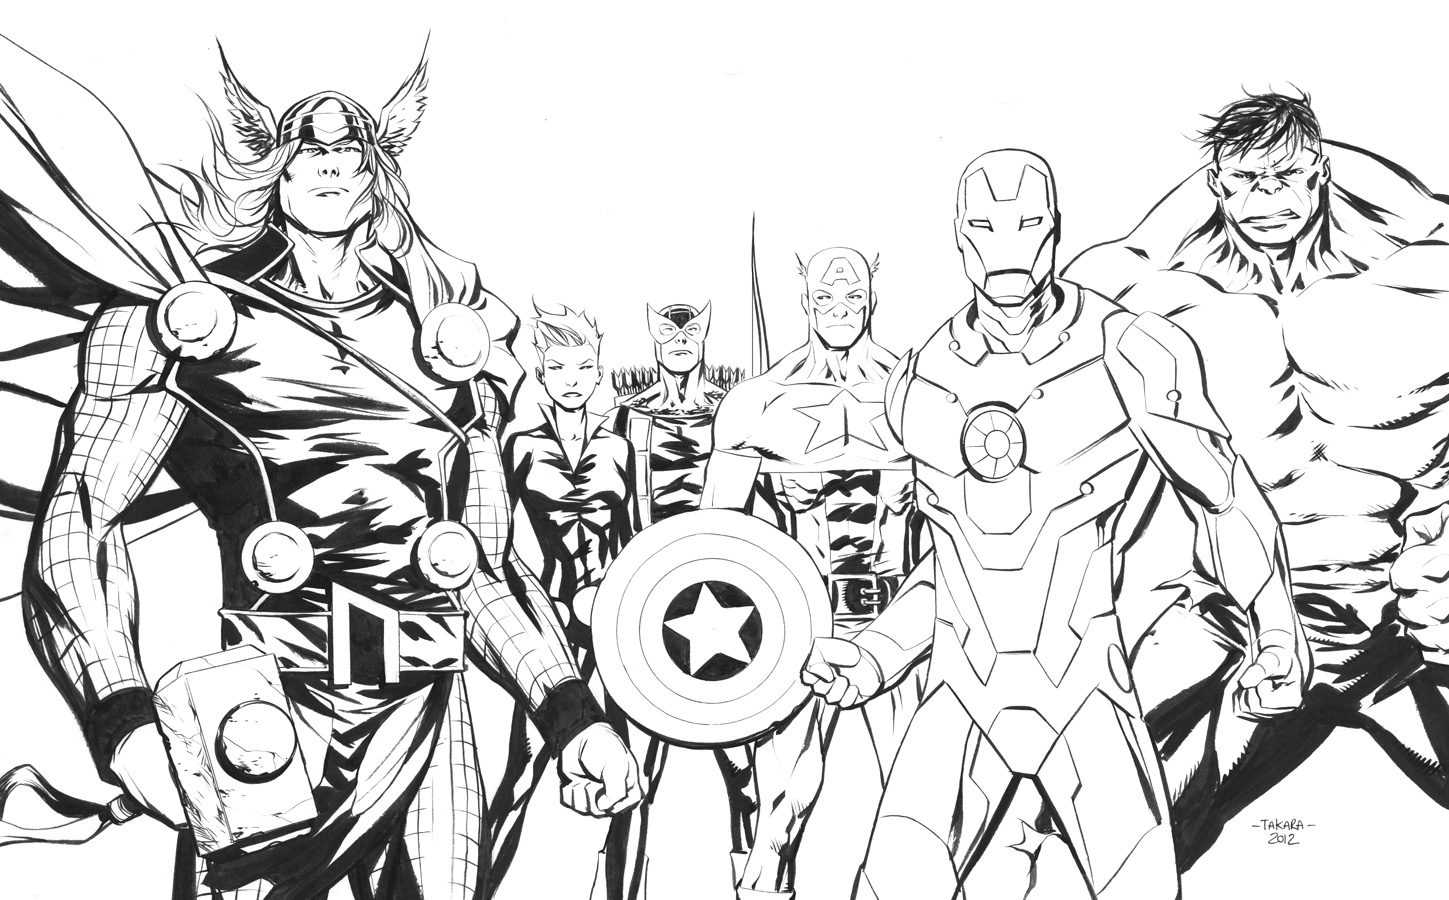 coloring avengers printables avengers coloring pages best coloring pages for kids avengers printables coloring